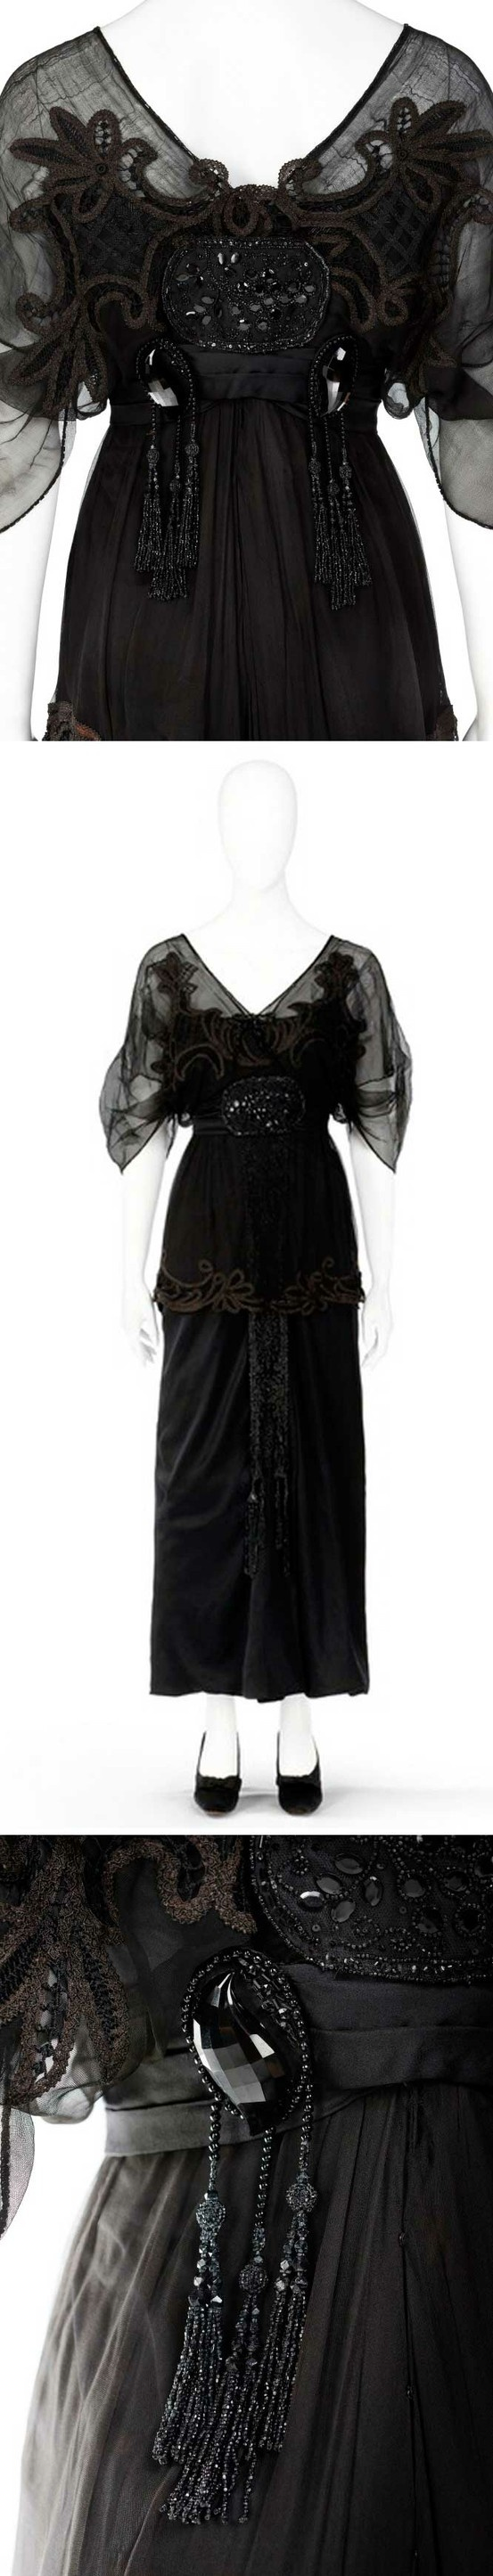 Dress, ca. 1910-14. Black silk and tulle. Bodice with simple kimono cut, v-neck front and back, short sleeves, and embroidery with pearls and sequins. On top of the silks, tulle cut into a loose train, edged with dark brown and black lace. Hallwyl Museum, Sweden